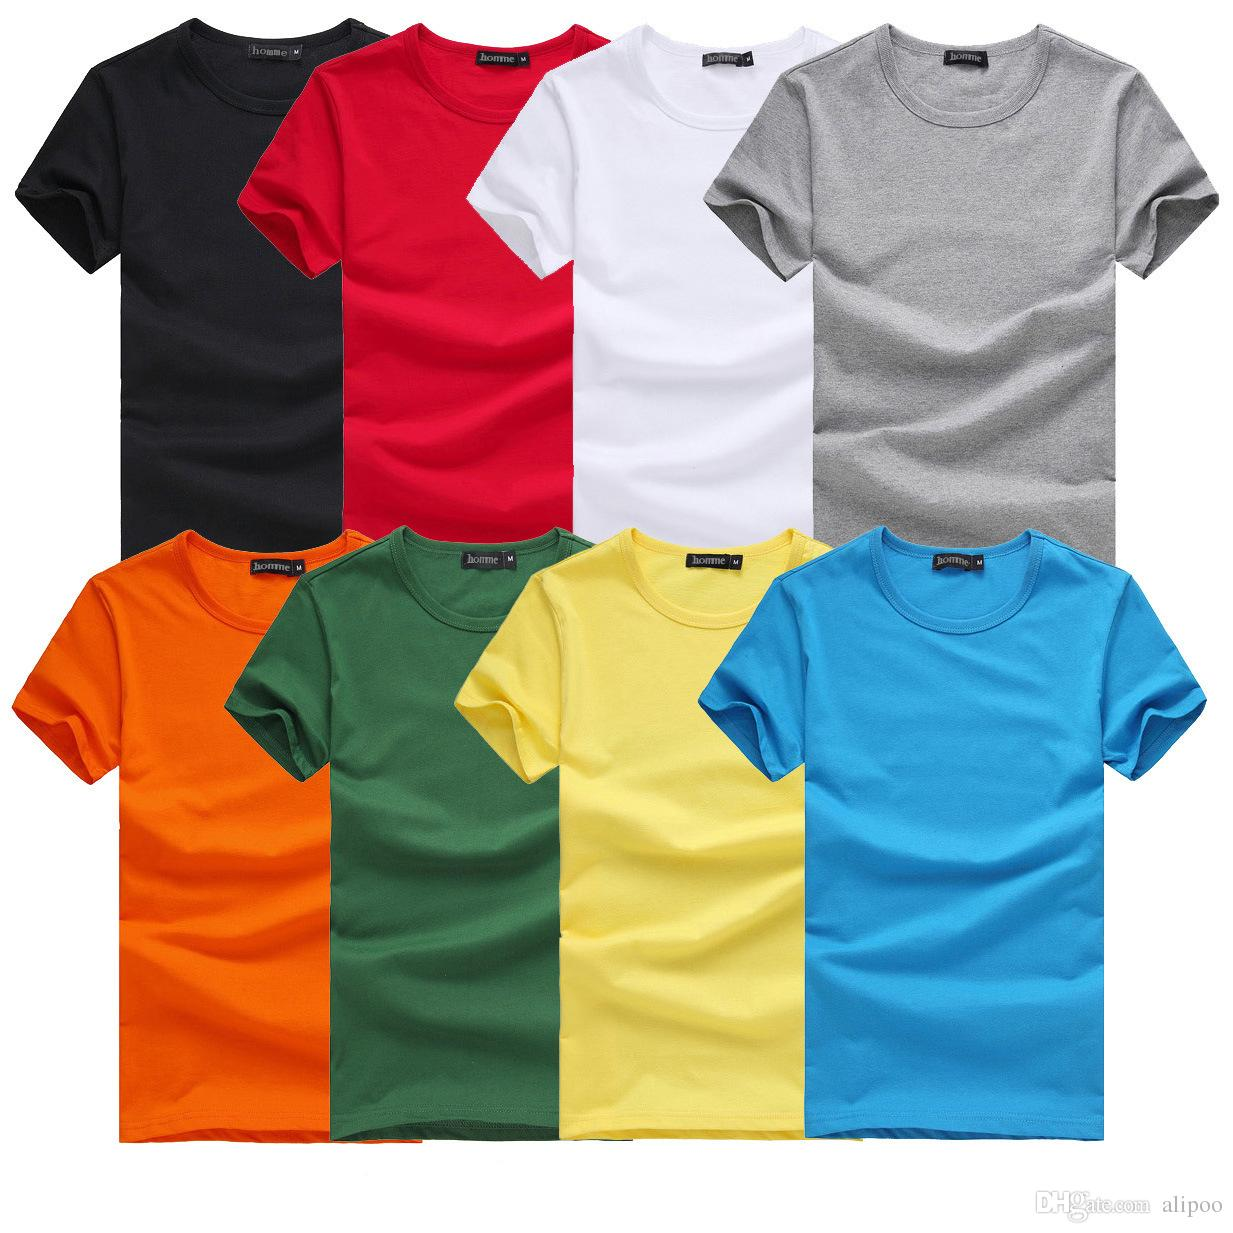 093b1e61d8 Wholesales Men Crew Neck T-Shirt Short Sleeve Cotton Tees 8 Solid Colors  Polos S~XXXL Big Boys Tops for Summer